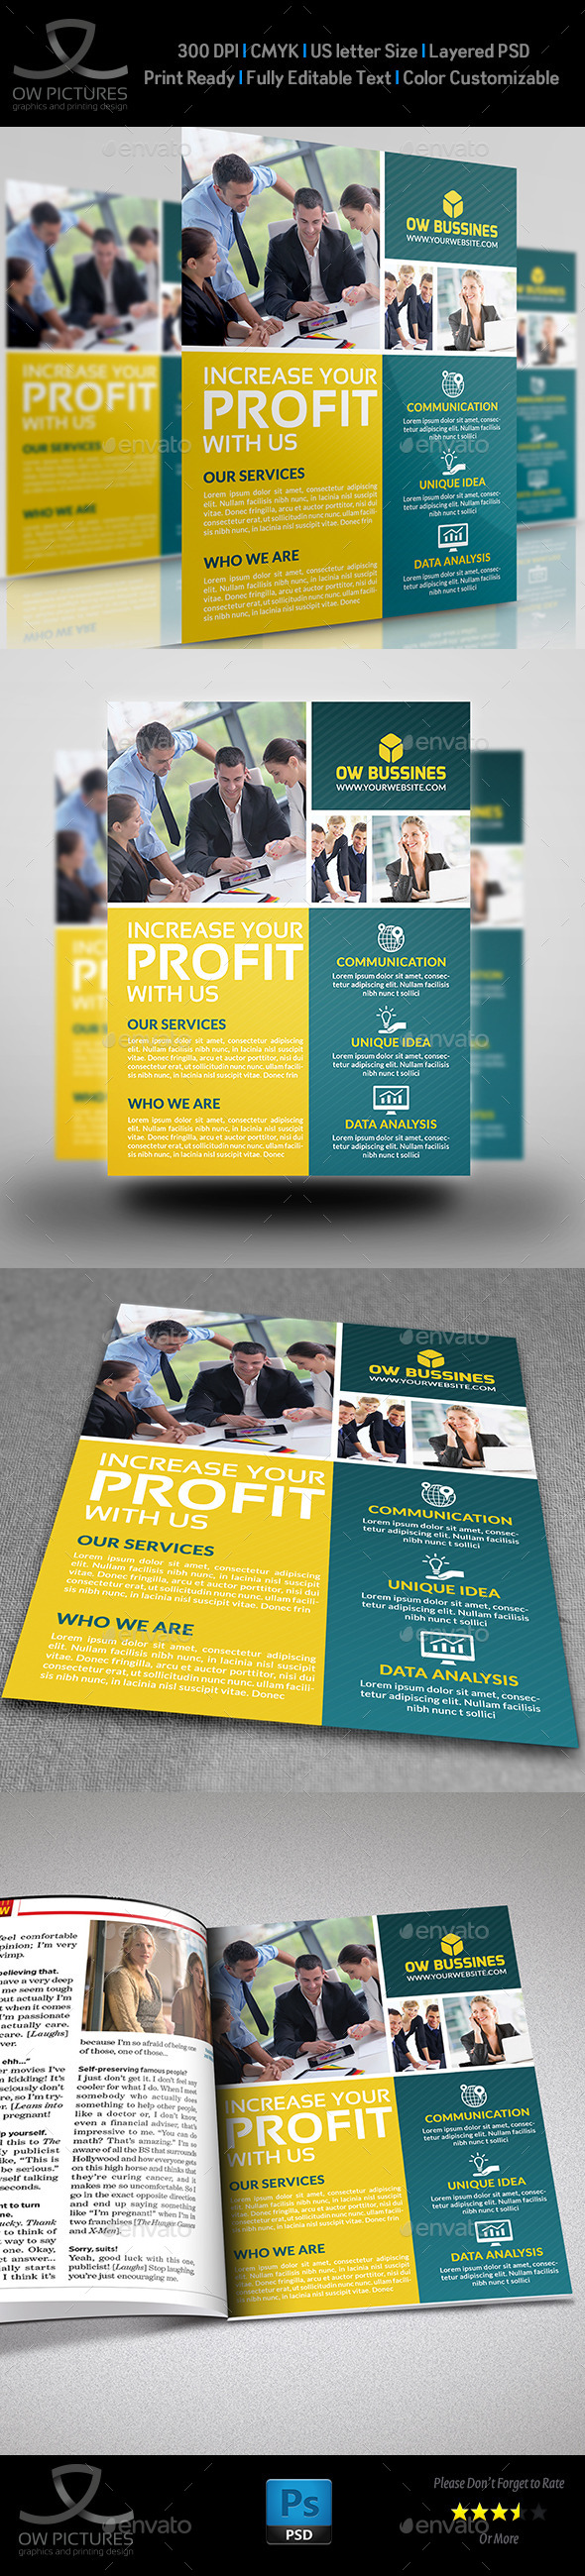 GraphicRiver Corporate Business Flyer Vol.14 9099160